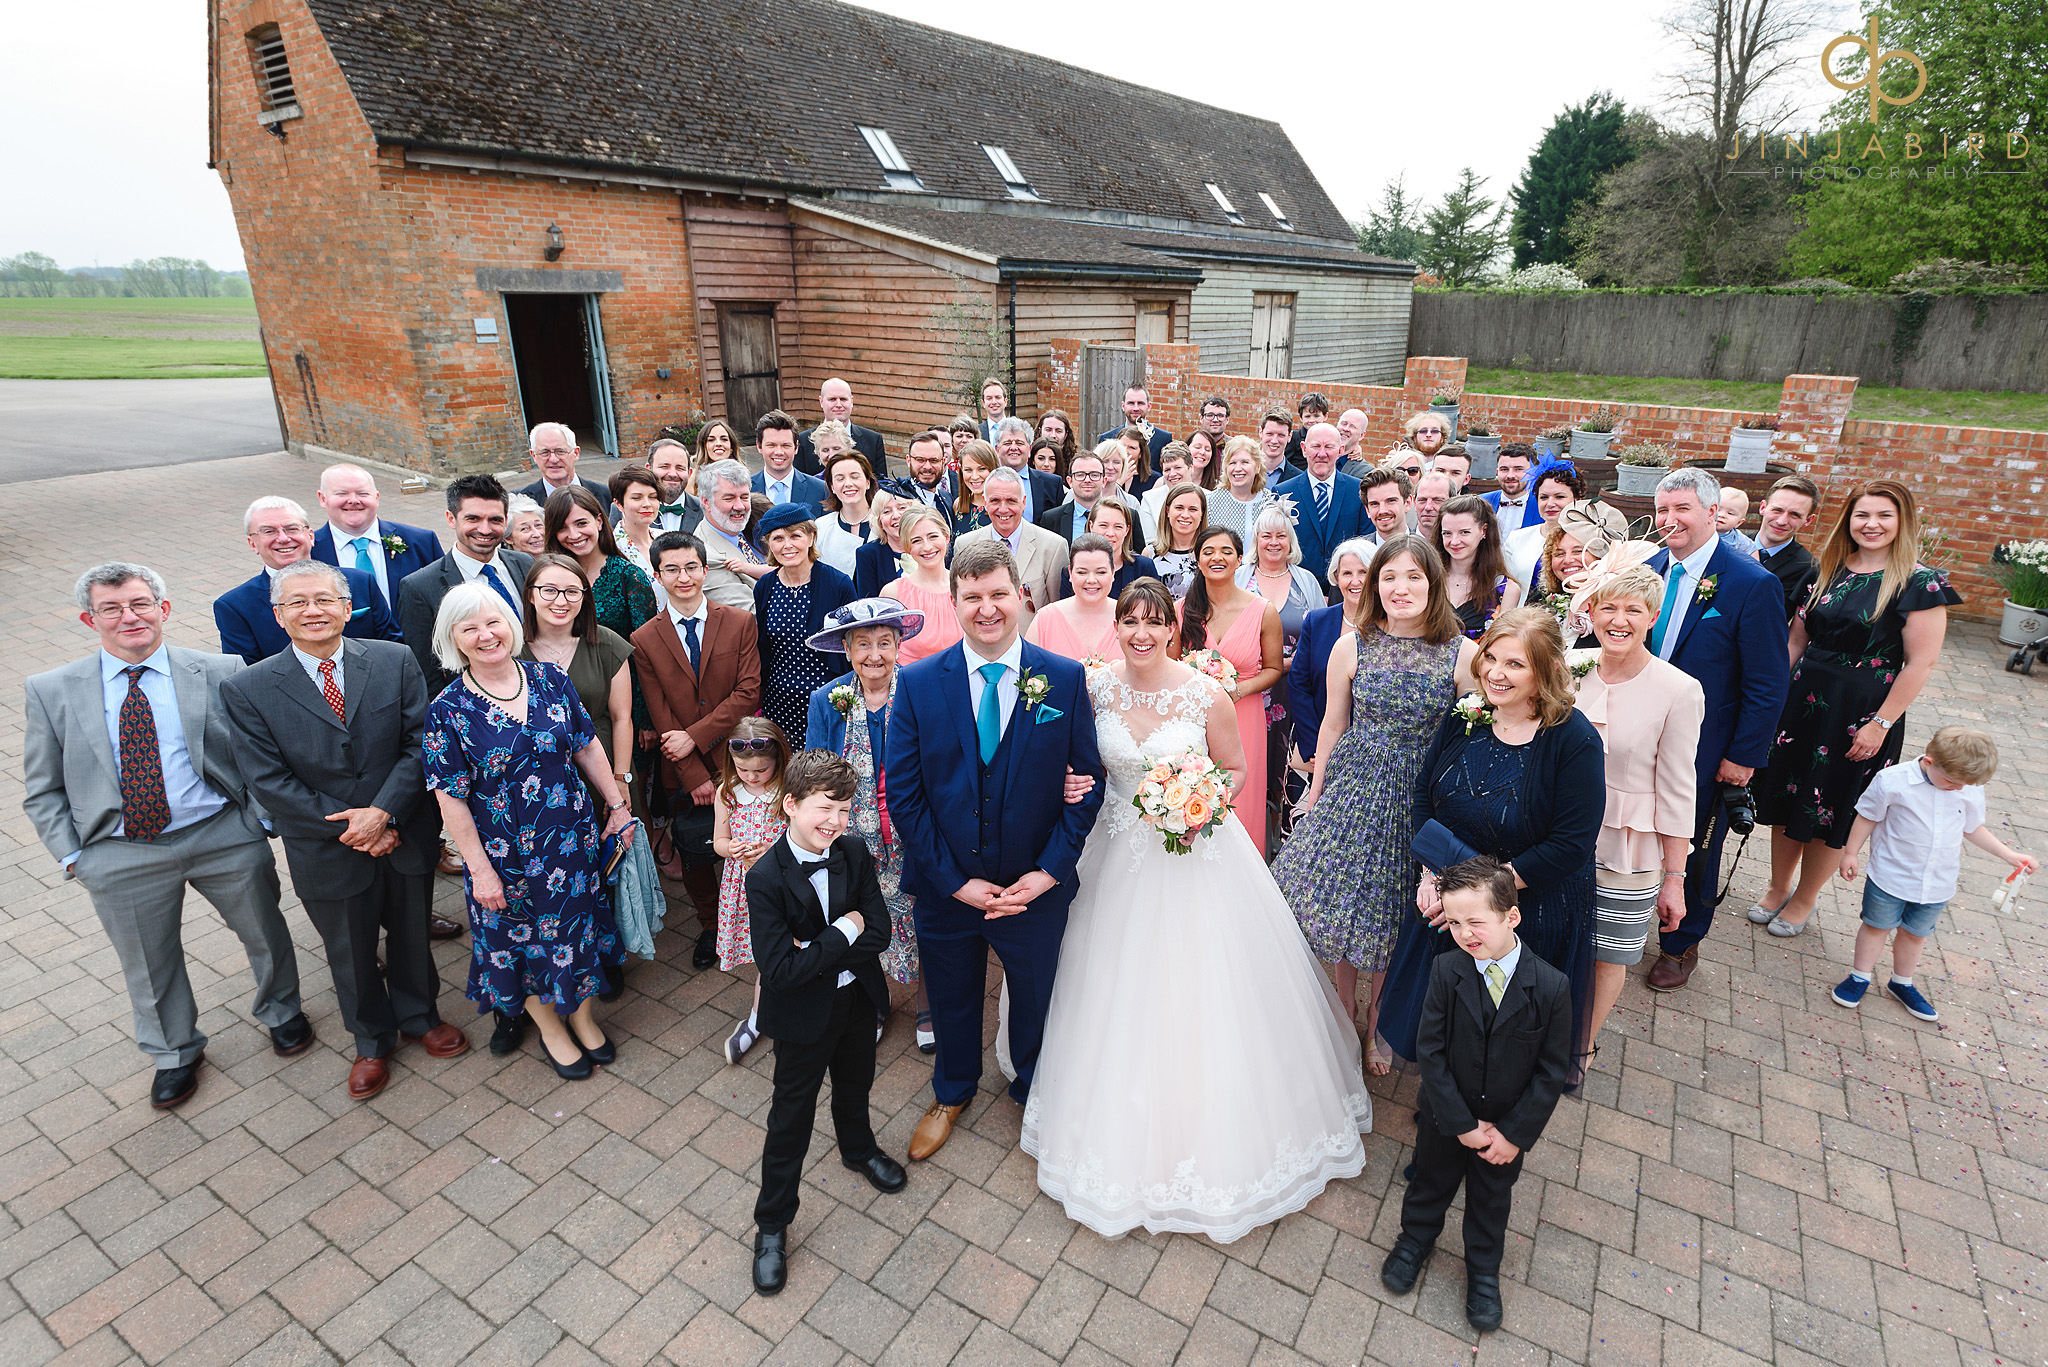 group photo at wedding bassmead manor